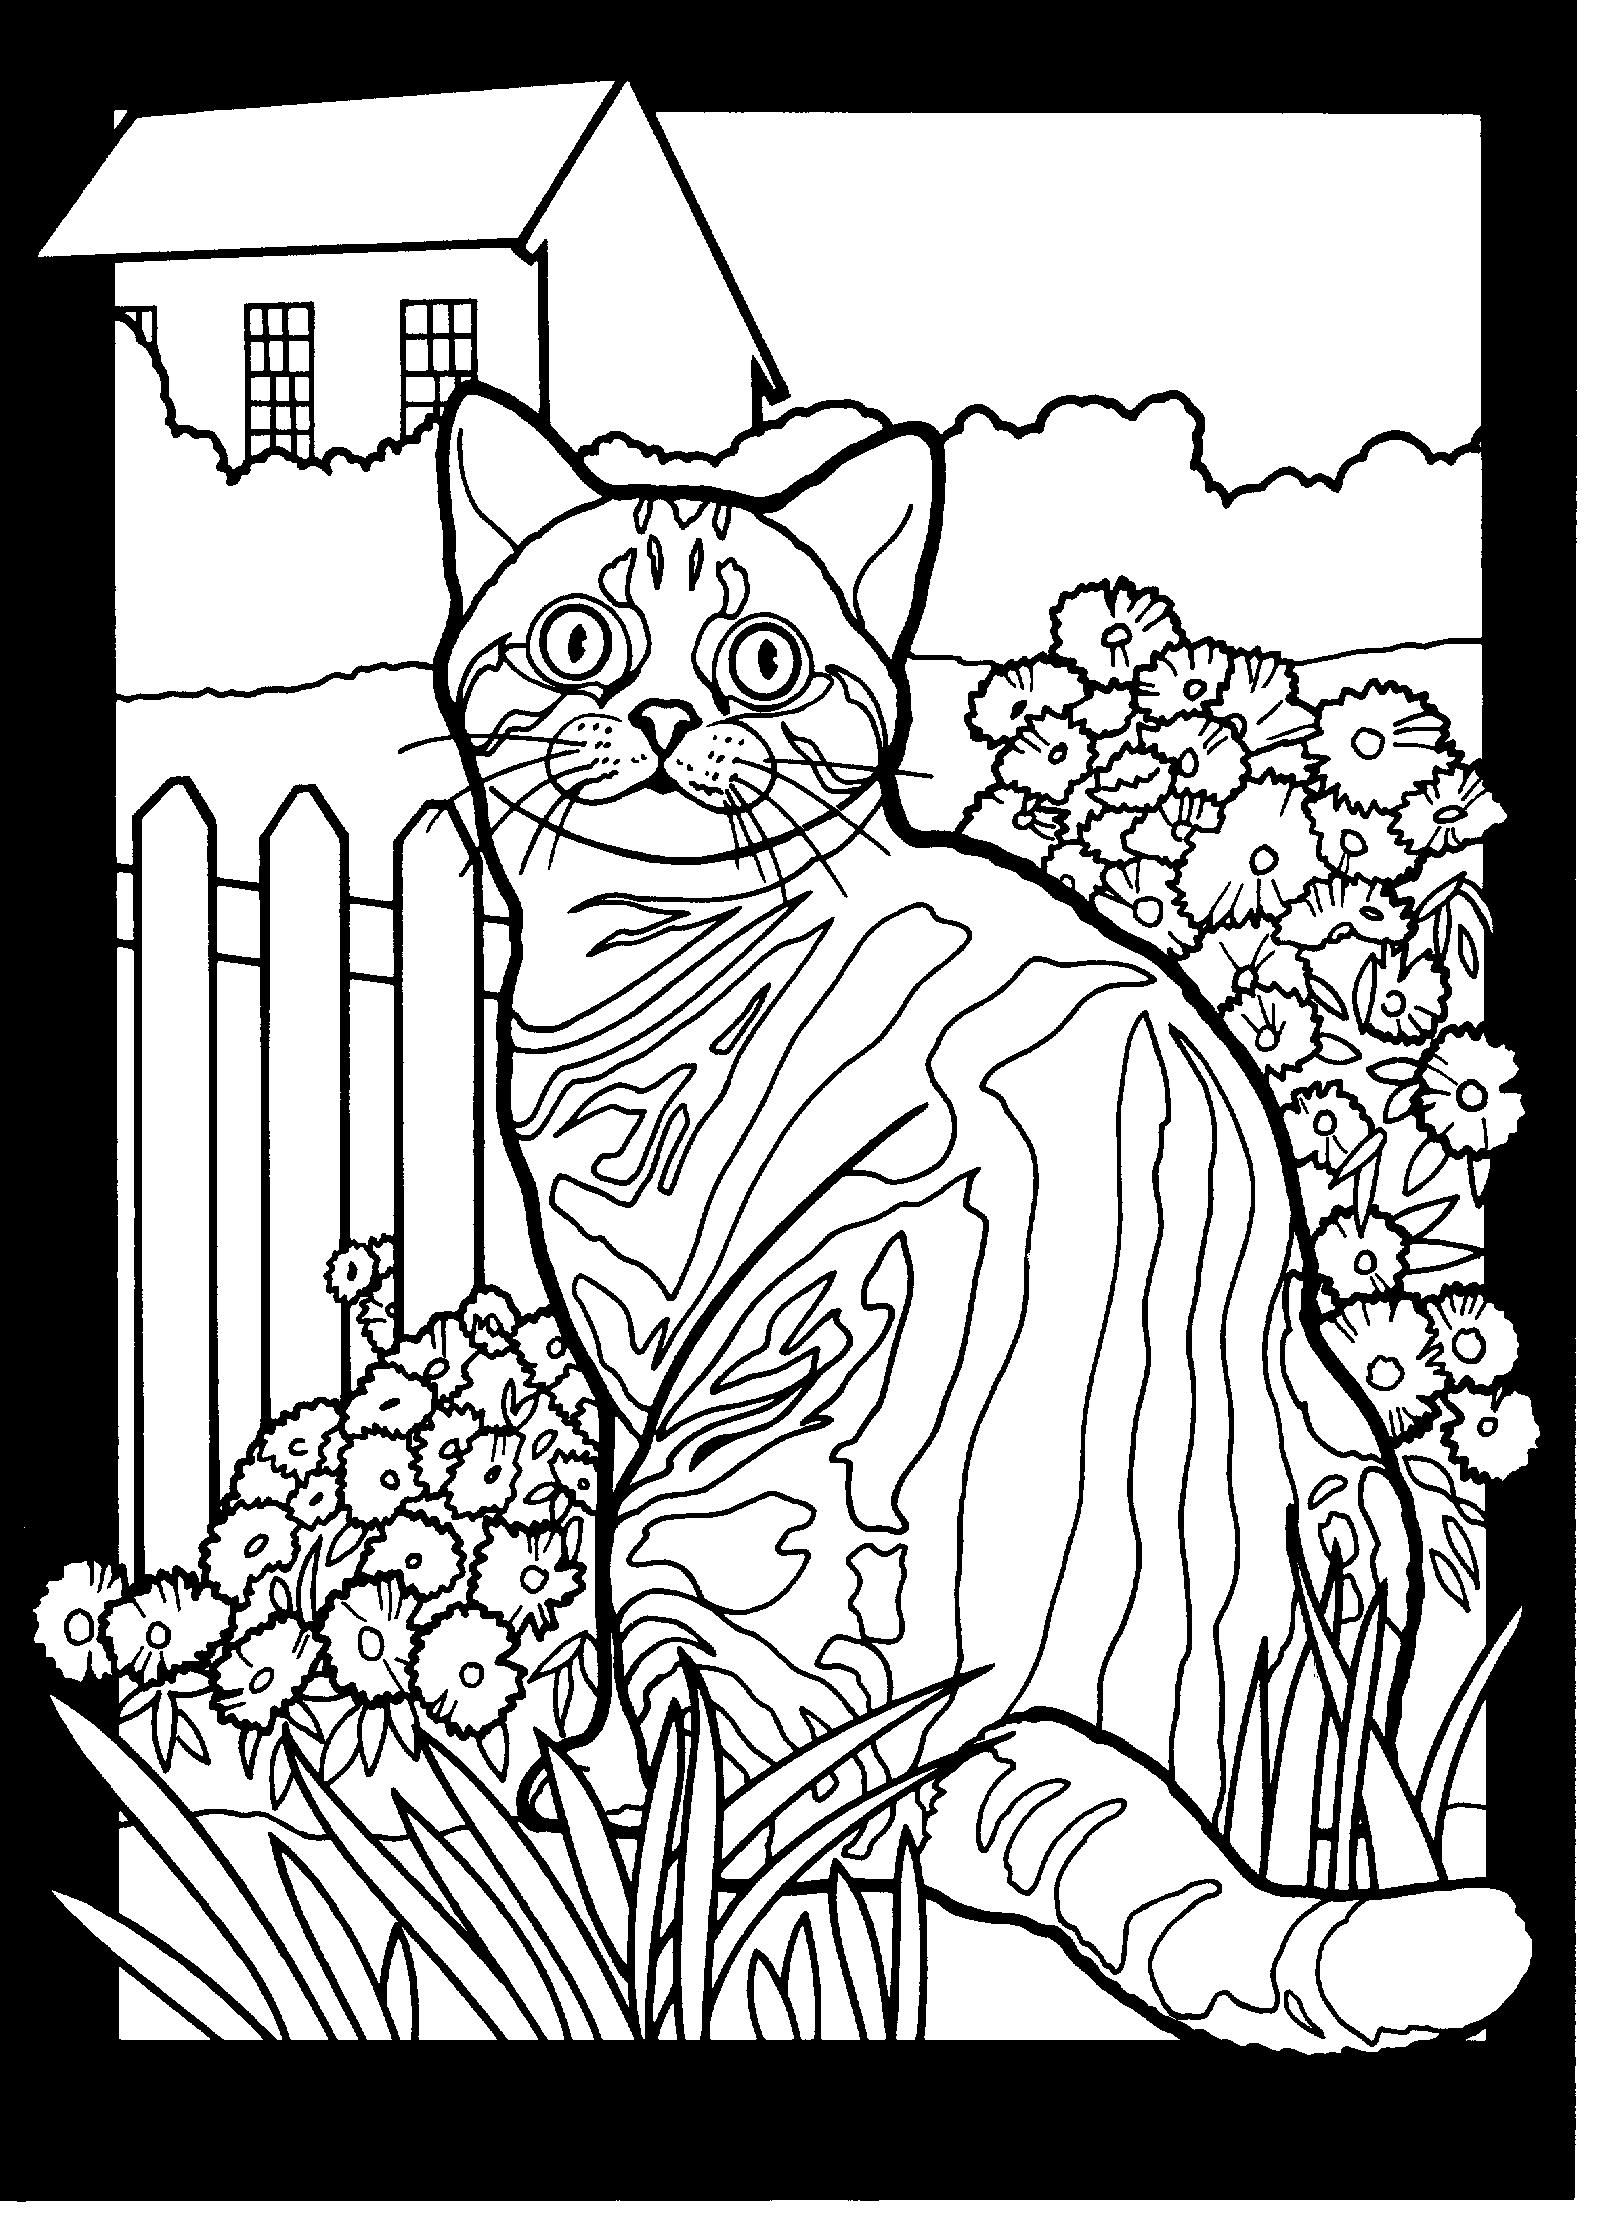 American Shorthair Marble Tabby Cat Coloring Page Coloring